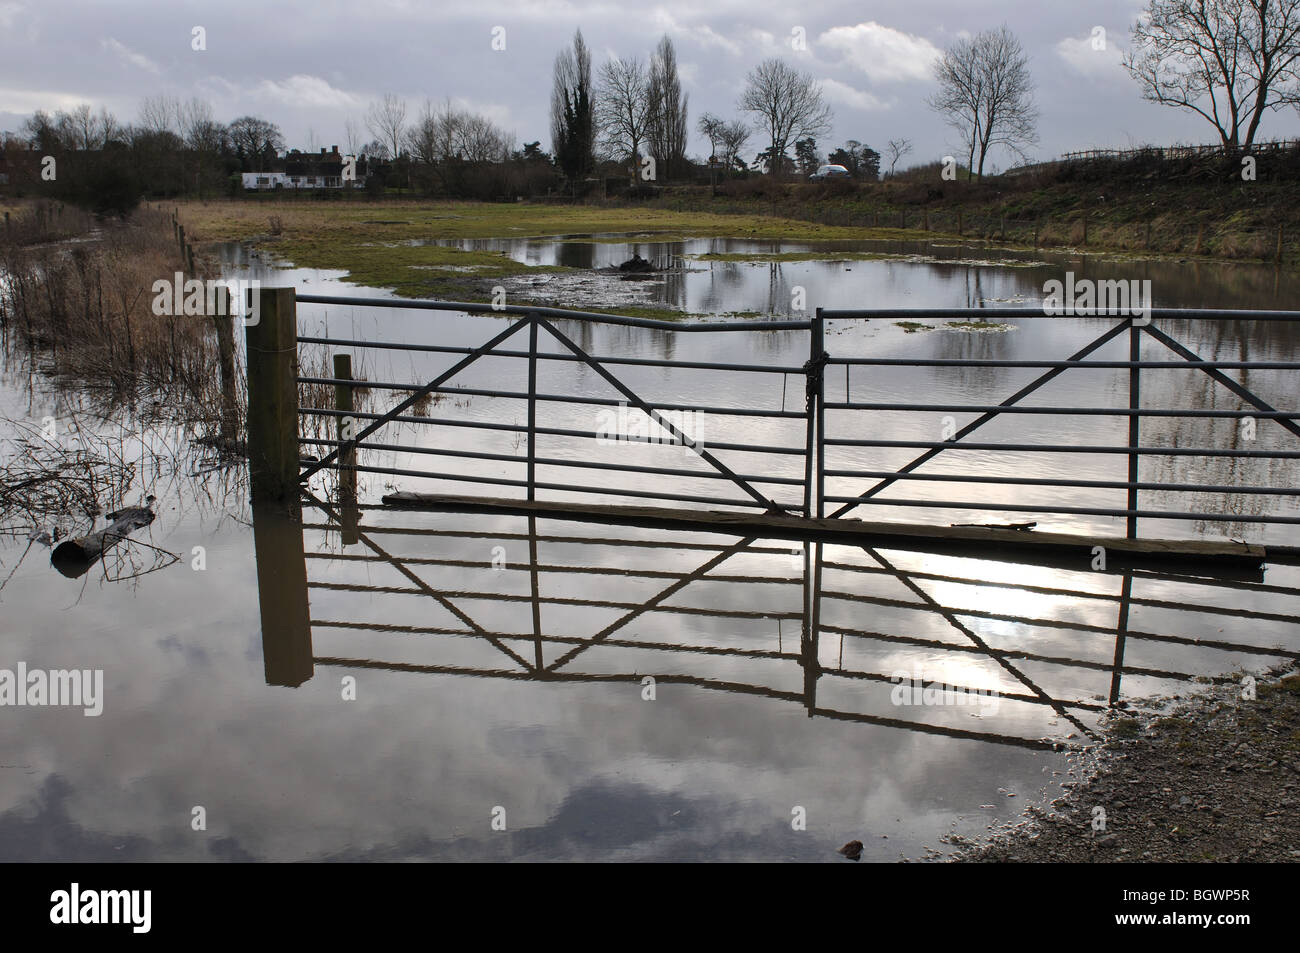 Gate reflected in River Avon floodwater, Barford, Warwickshire, England, UK Stock Photo